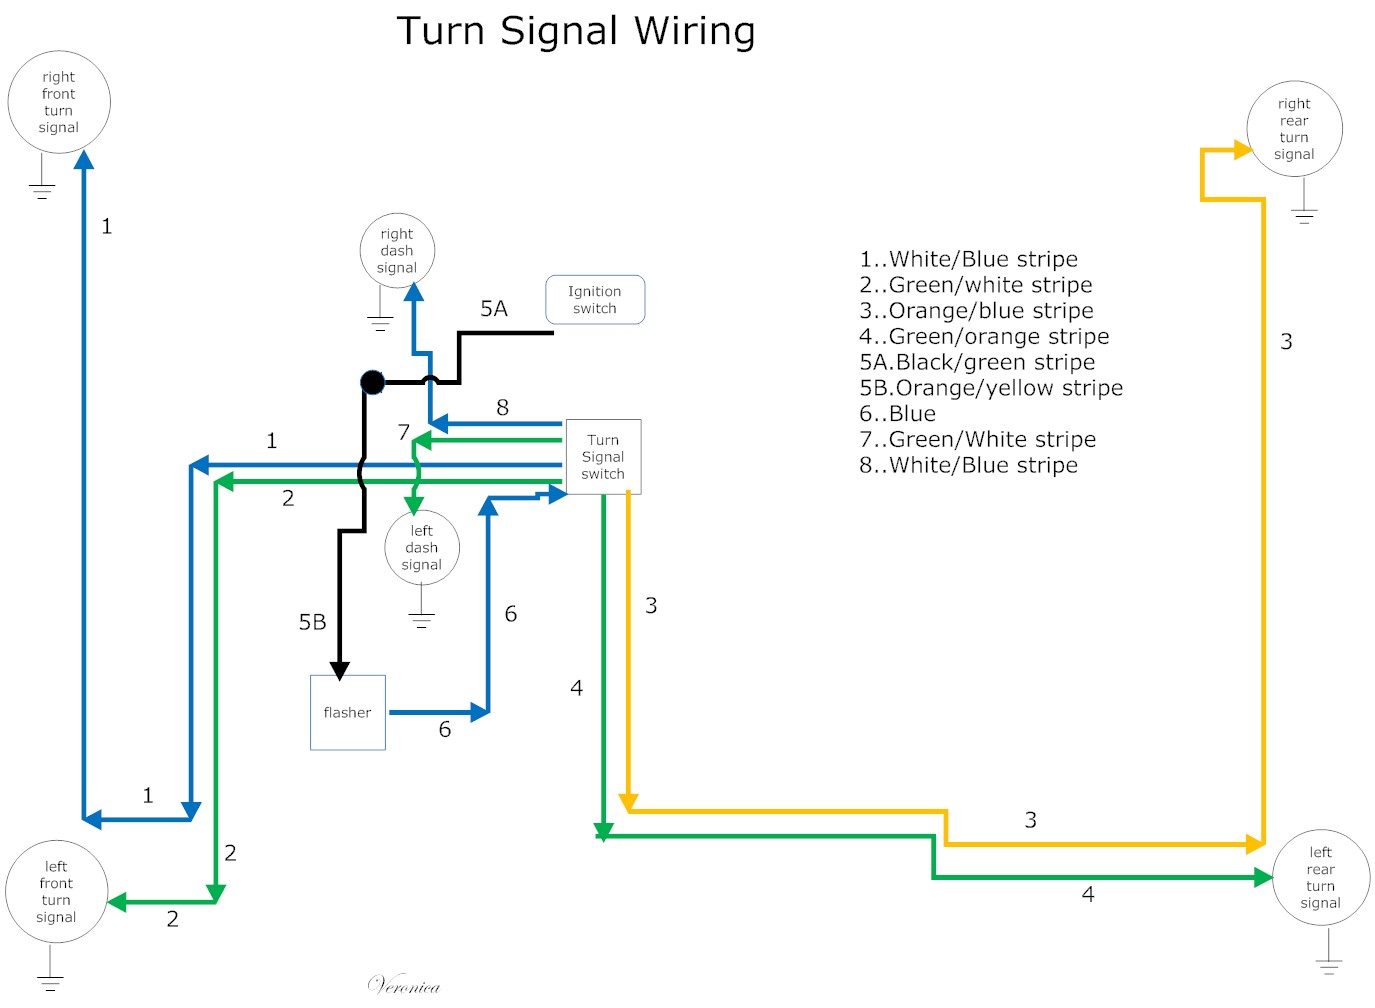 Turn+signal+Wiring the care and feeding of ponies 1965 mustang wiring diagrams 66 mustang wiring diagram at nearapp.co